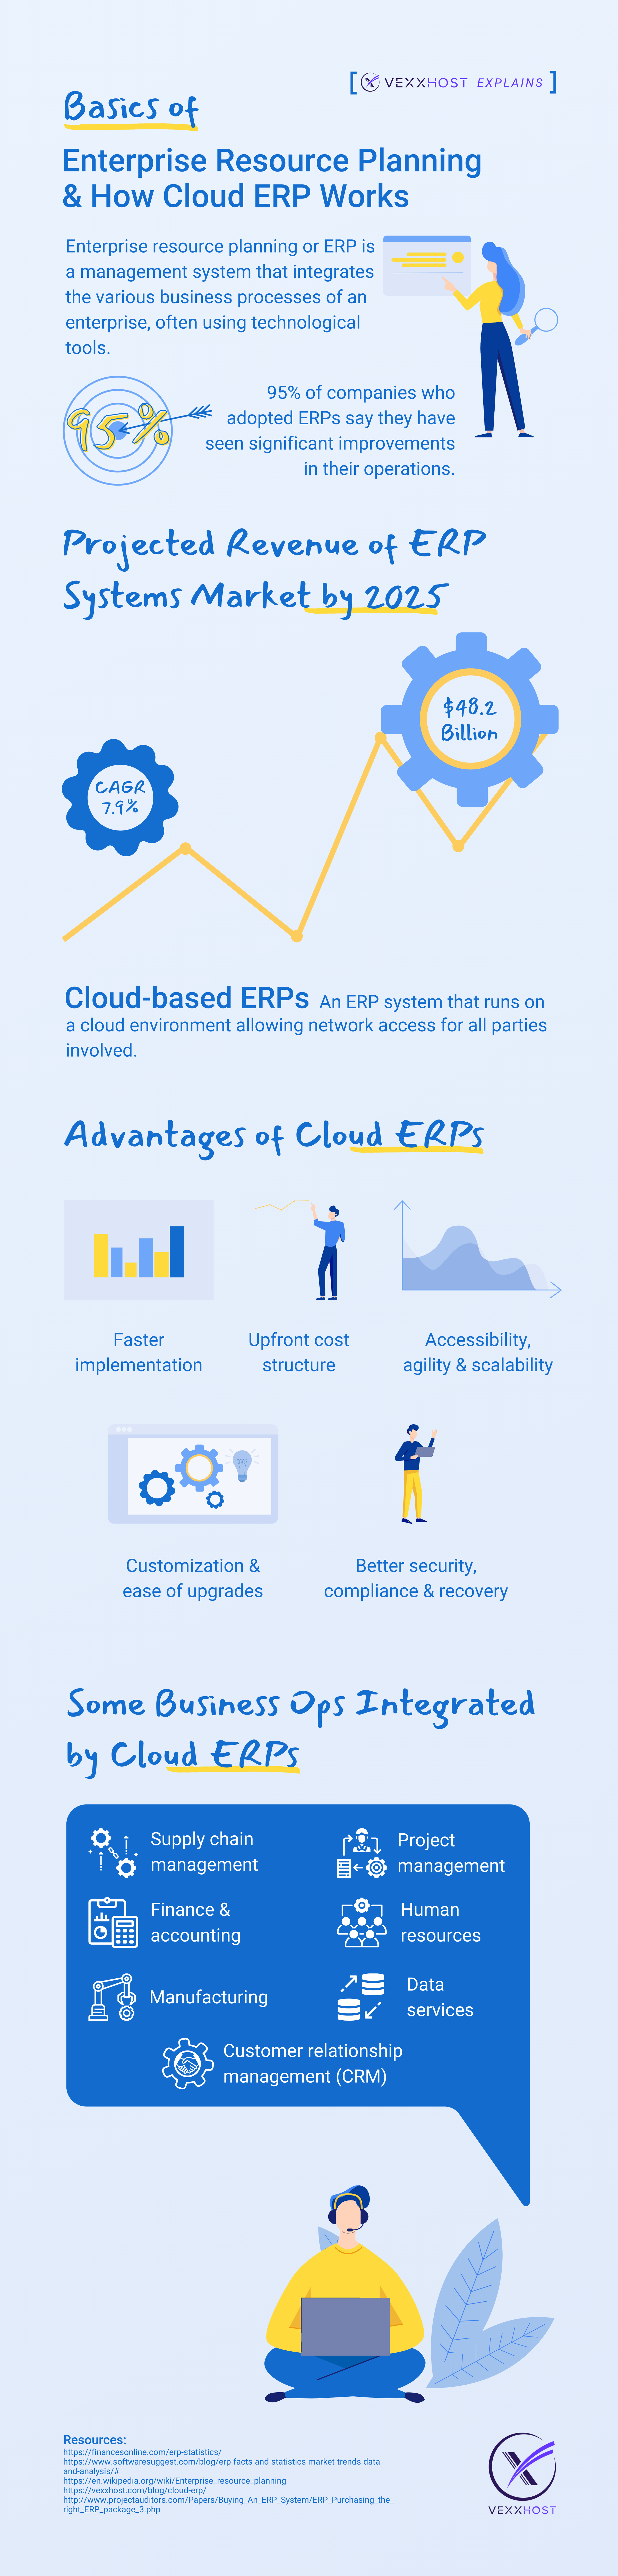 Basics of Enterprise Resource Planning and How Cloud ERP Works